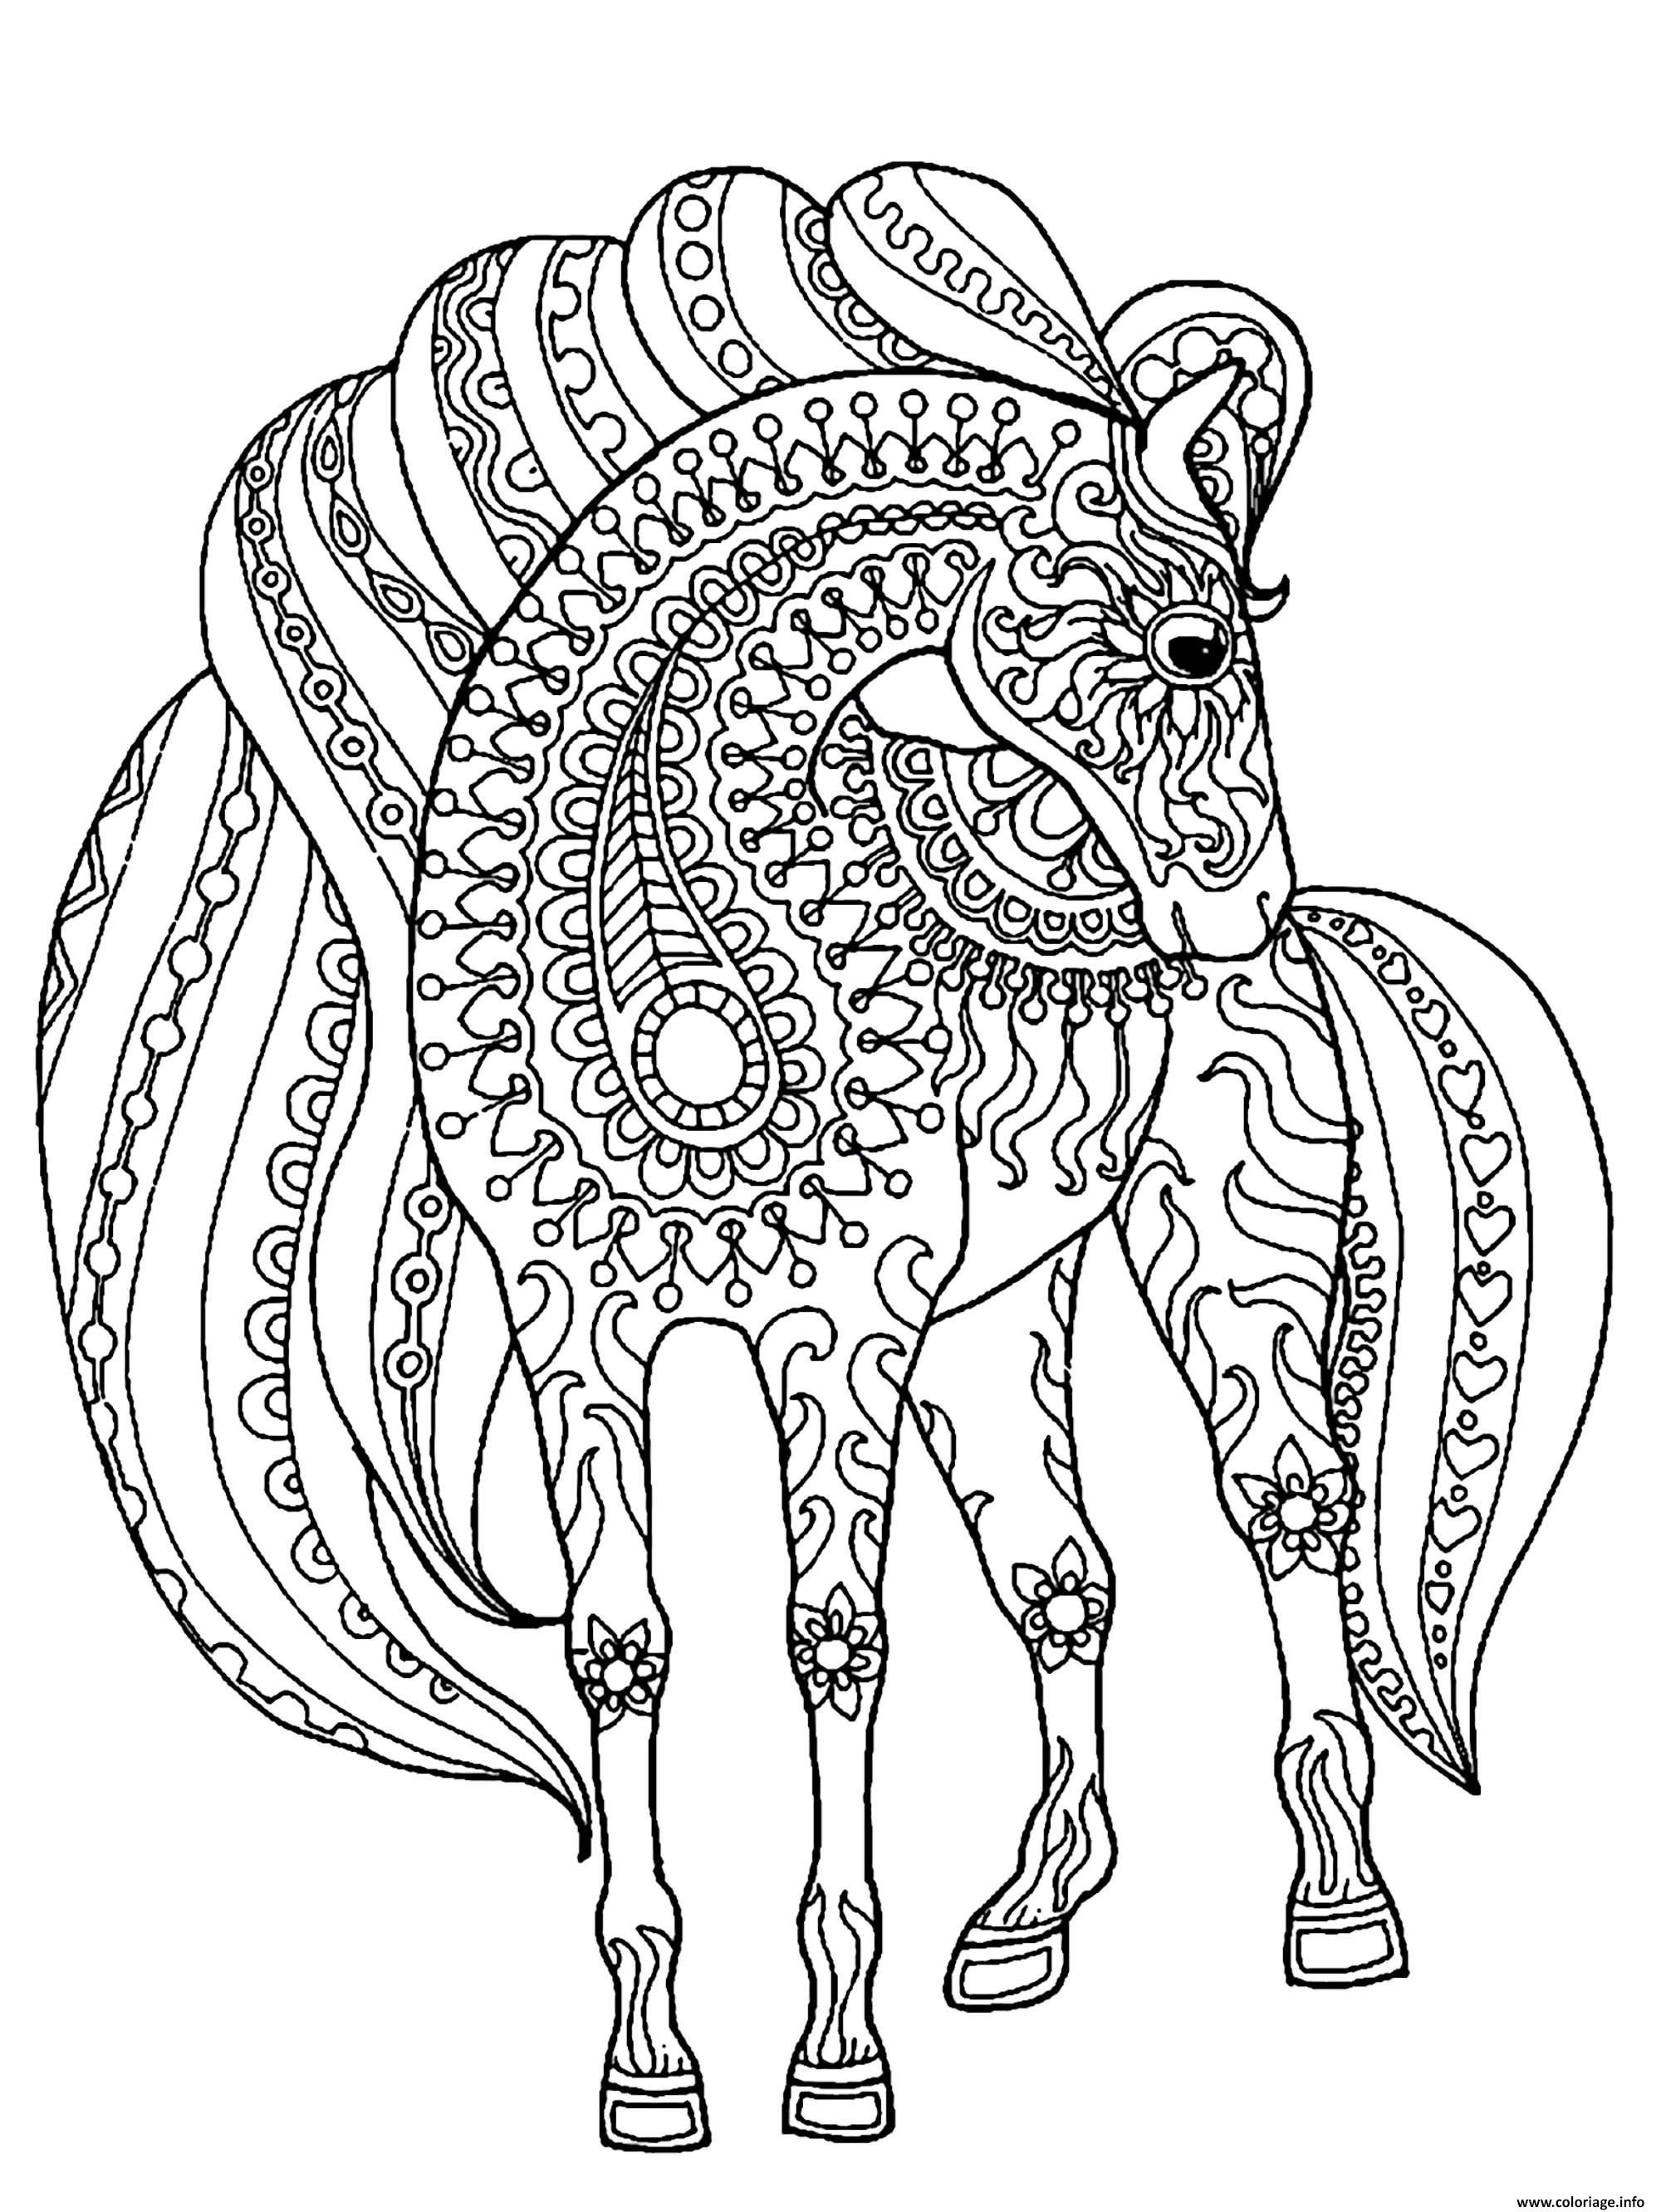 Dessin adulte cheval simple zentangle patterns Coloriage Gratuit à Imprimer